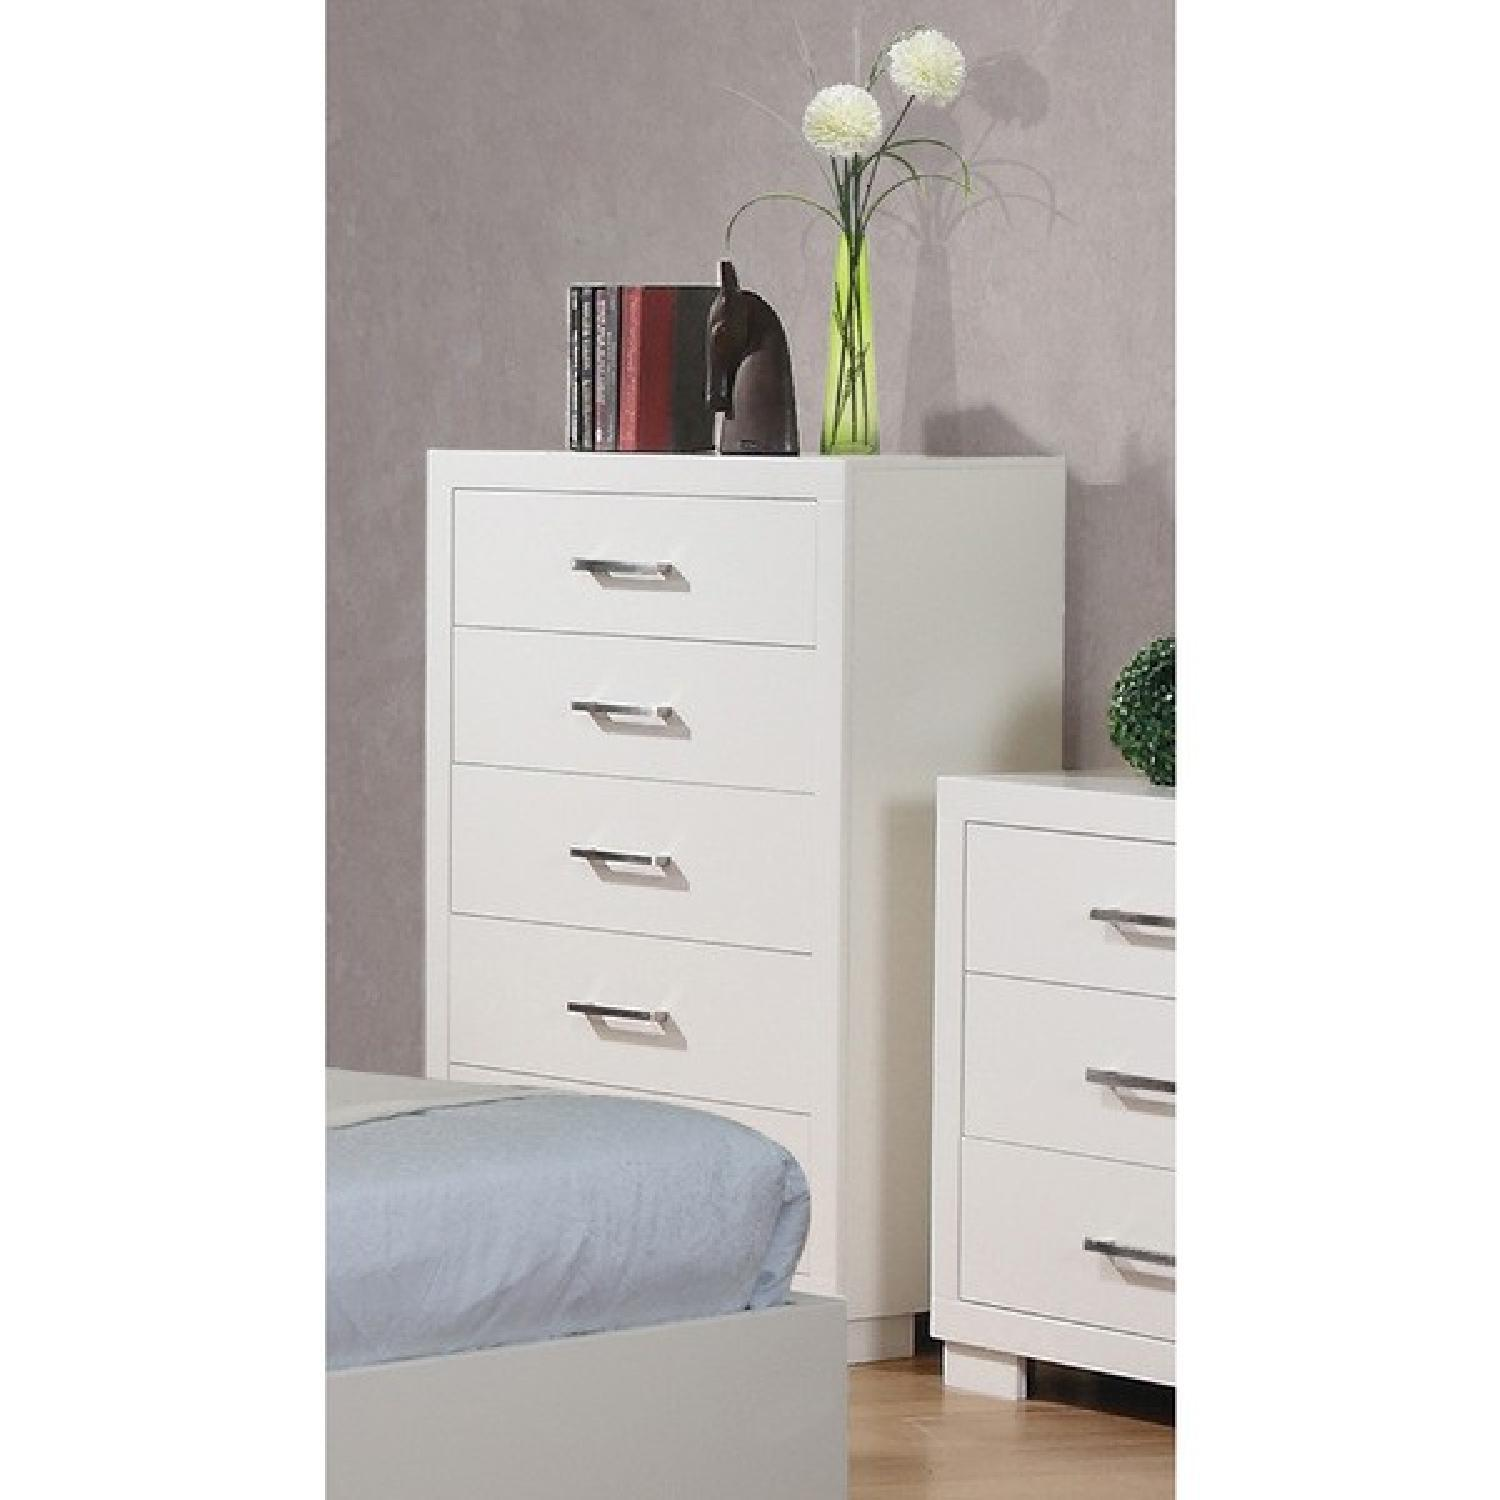 Modern 5-Drawer Solid Wood Chest w/ Dove-Tail & Full Extension Drawers in White Finish - image-3